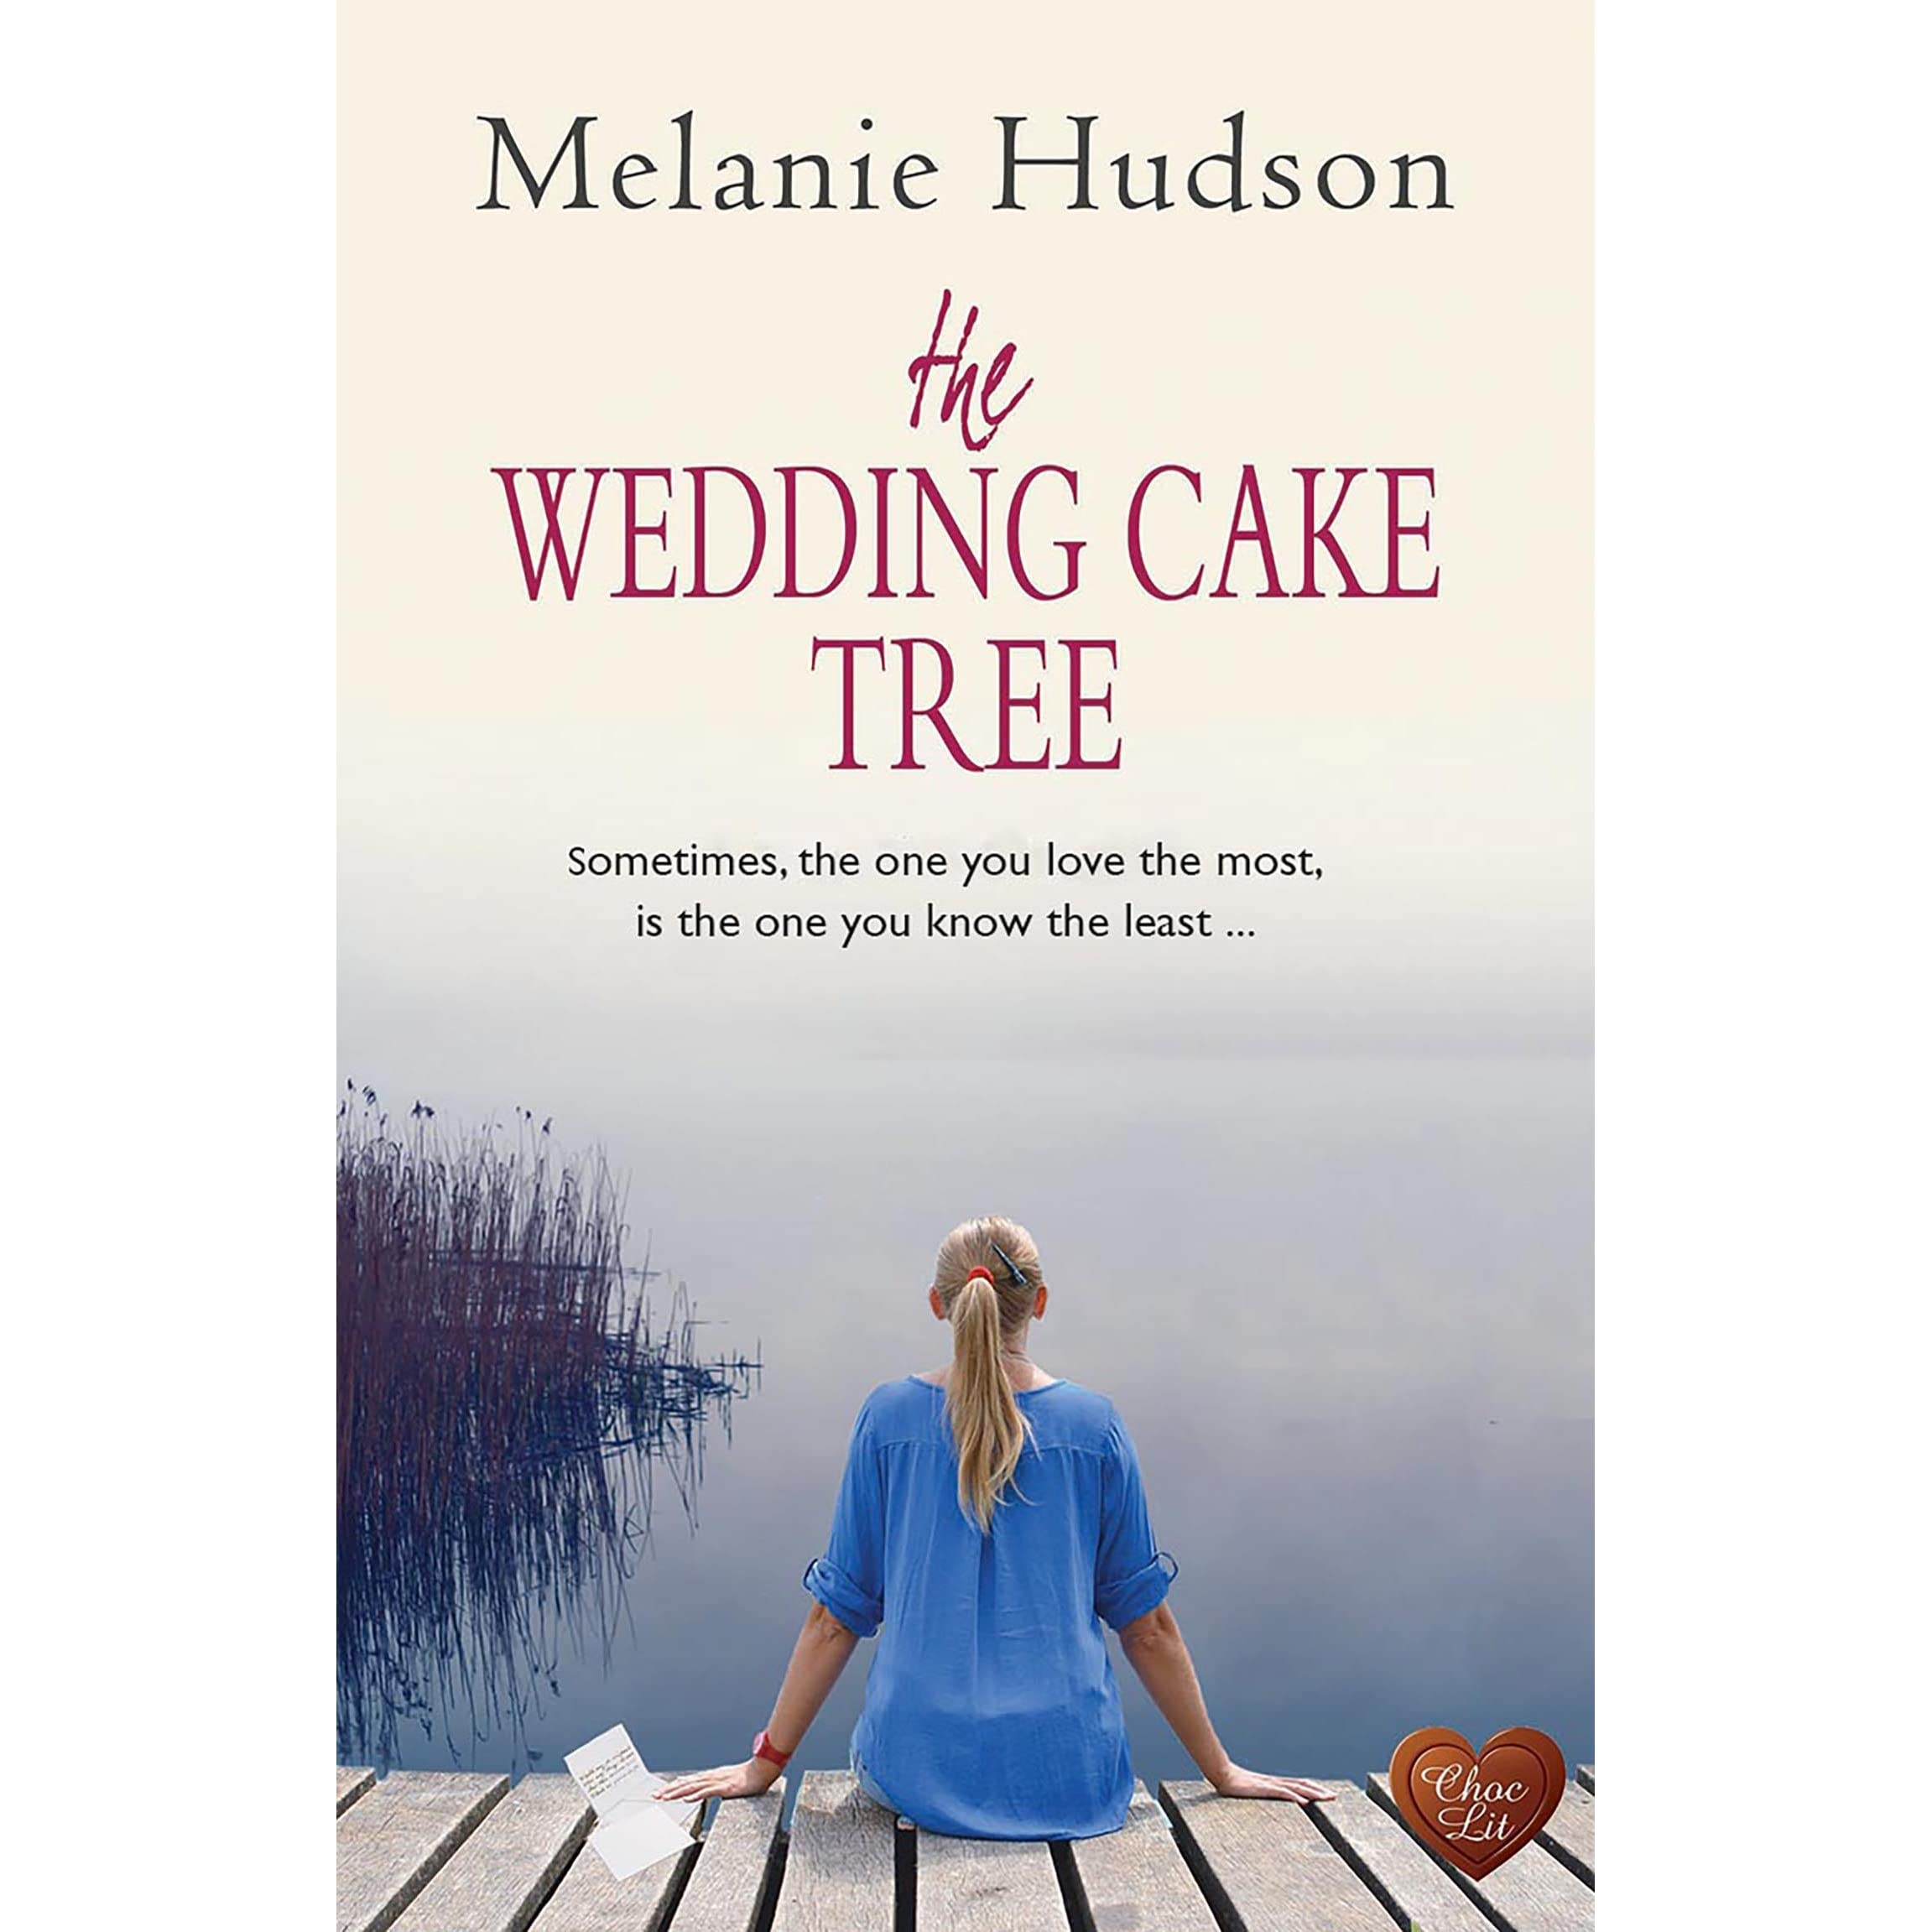 the wedding cake tree by melanie hudson the wedding cake tree by melanie hudson reviews 20917